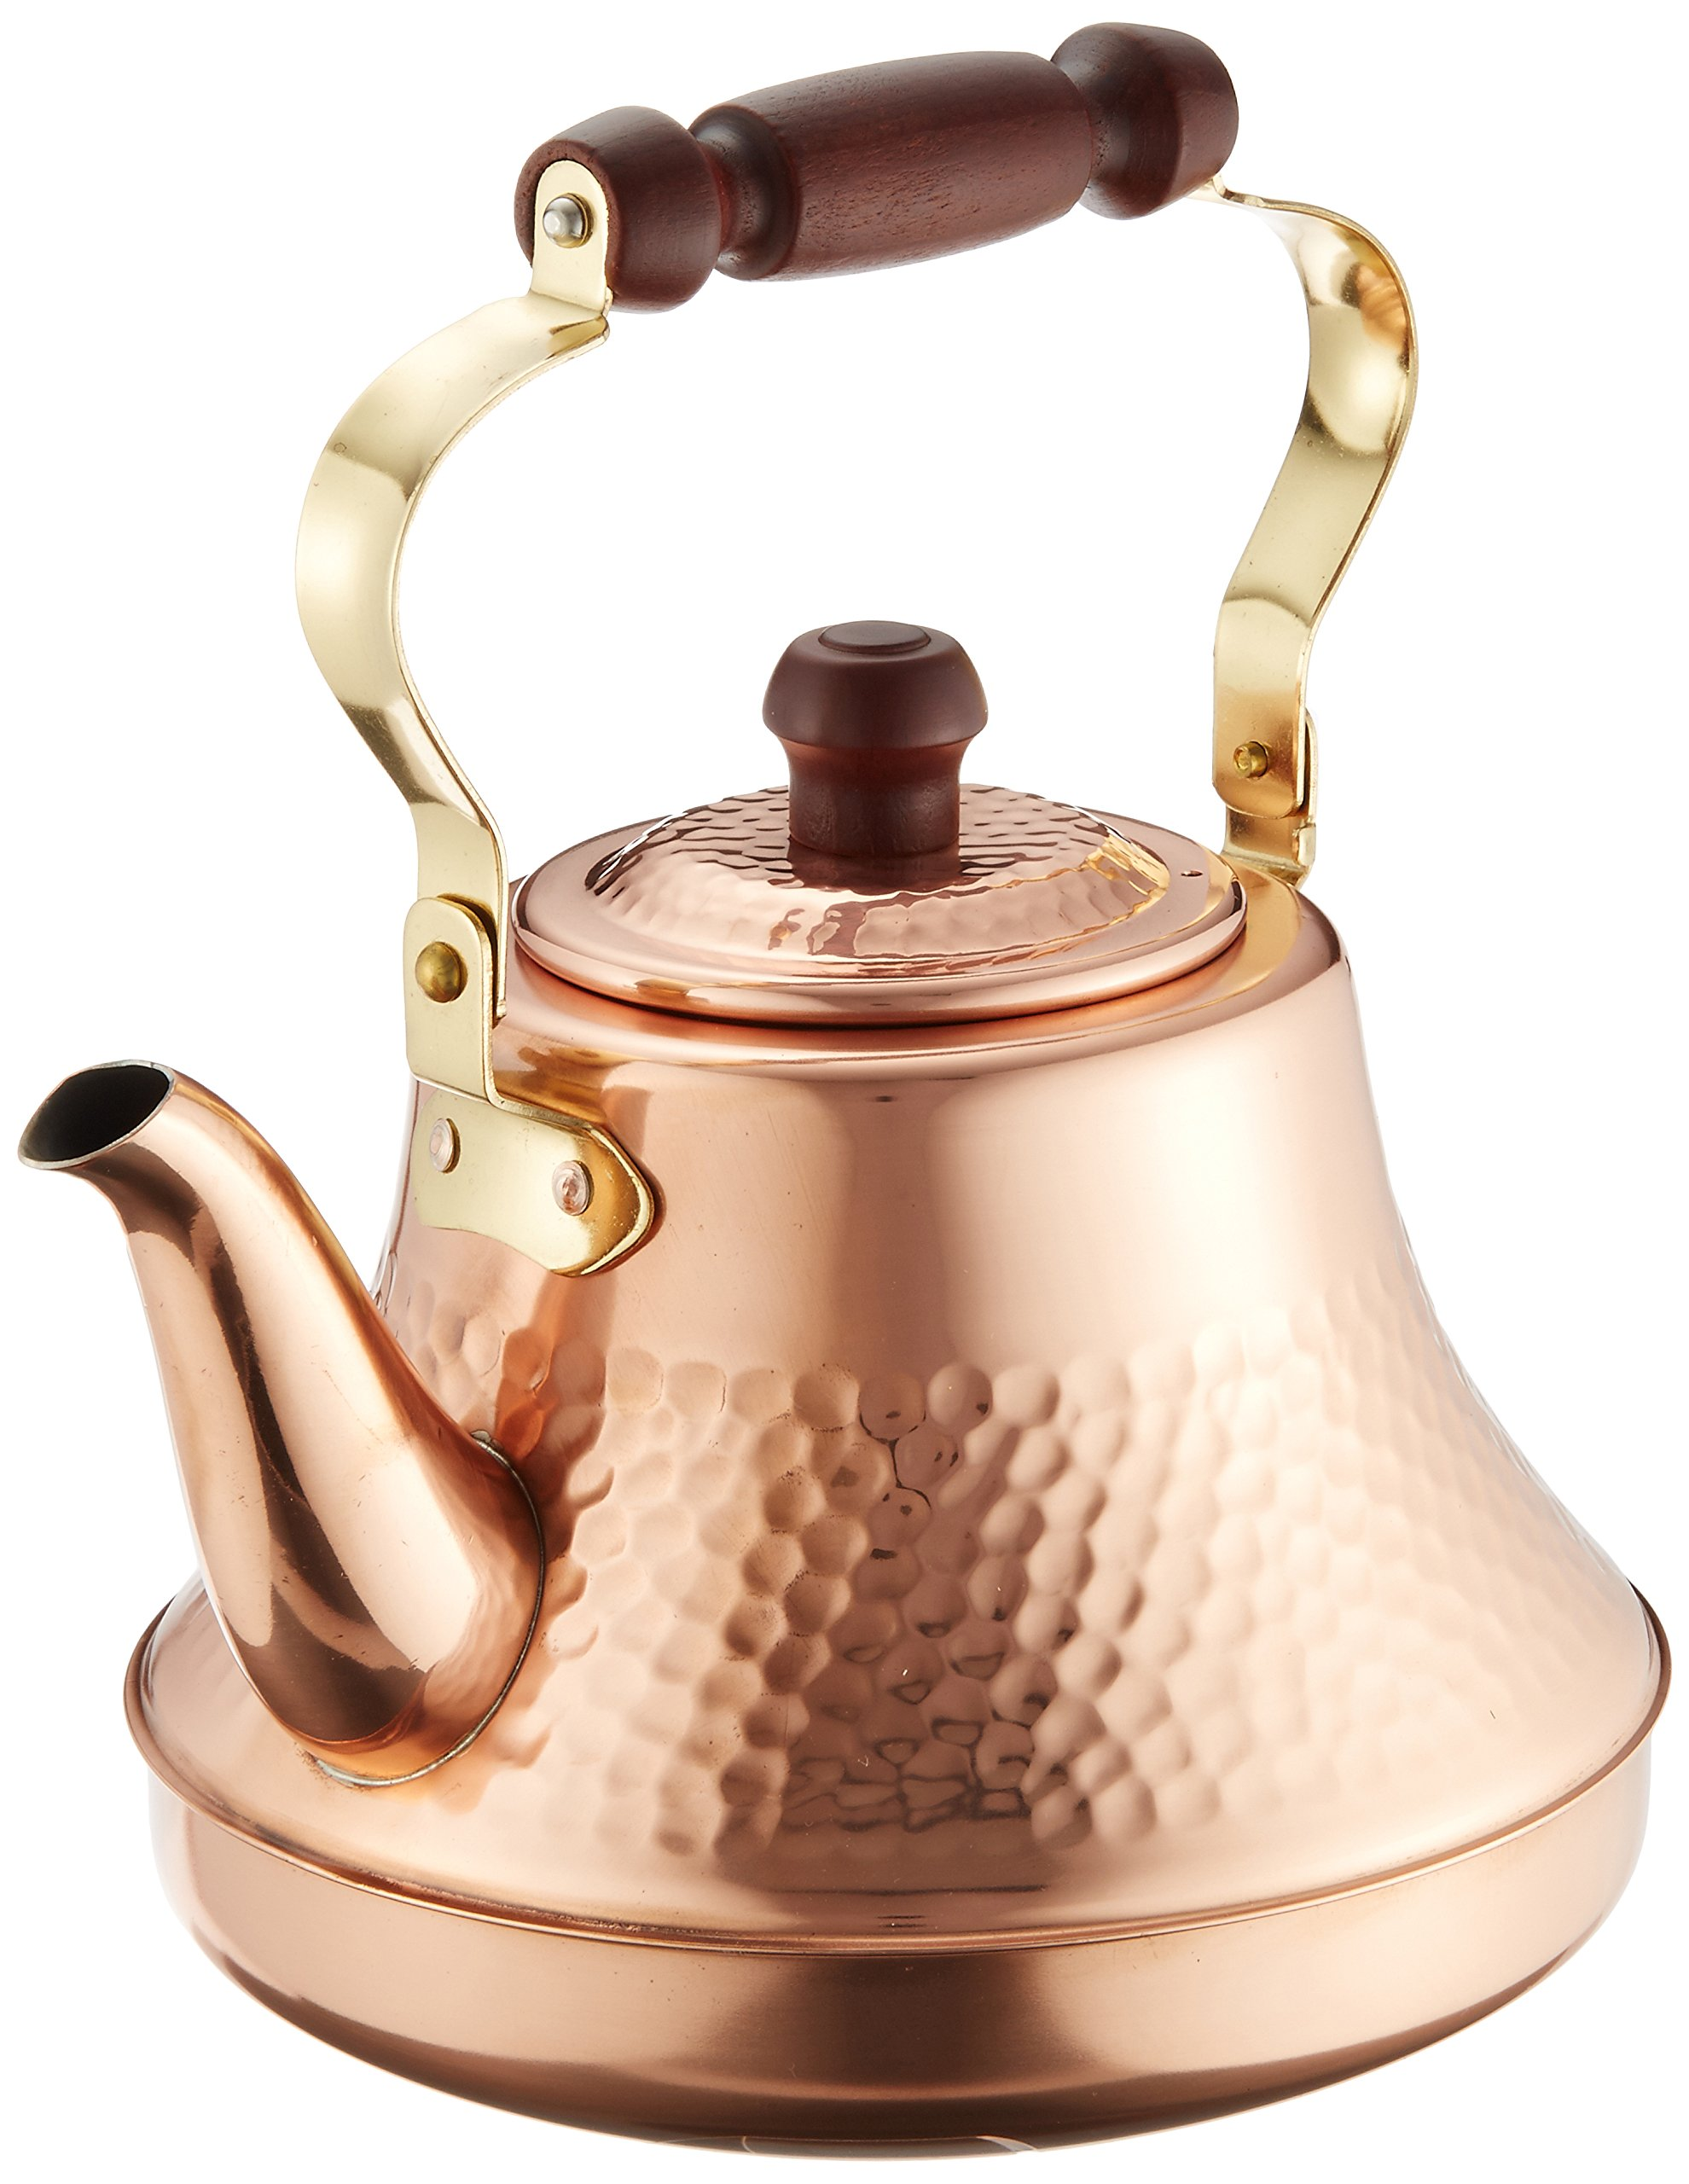 Pure copper Classy Kettle 2.5L TY-8325 2725ao by Takegoshi industry